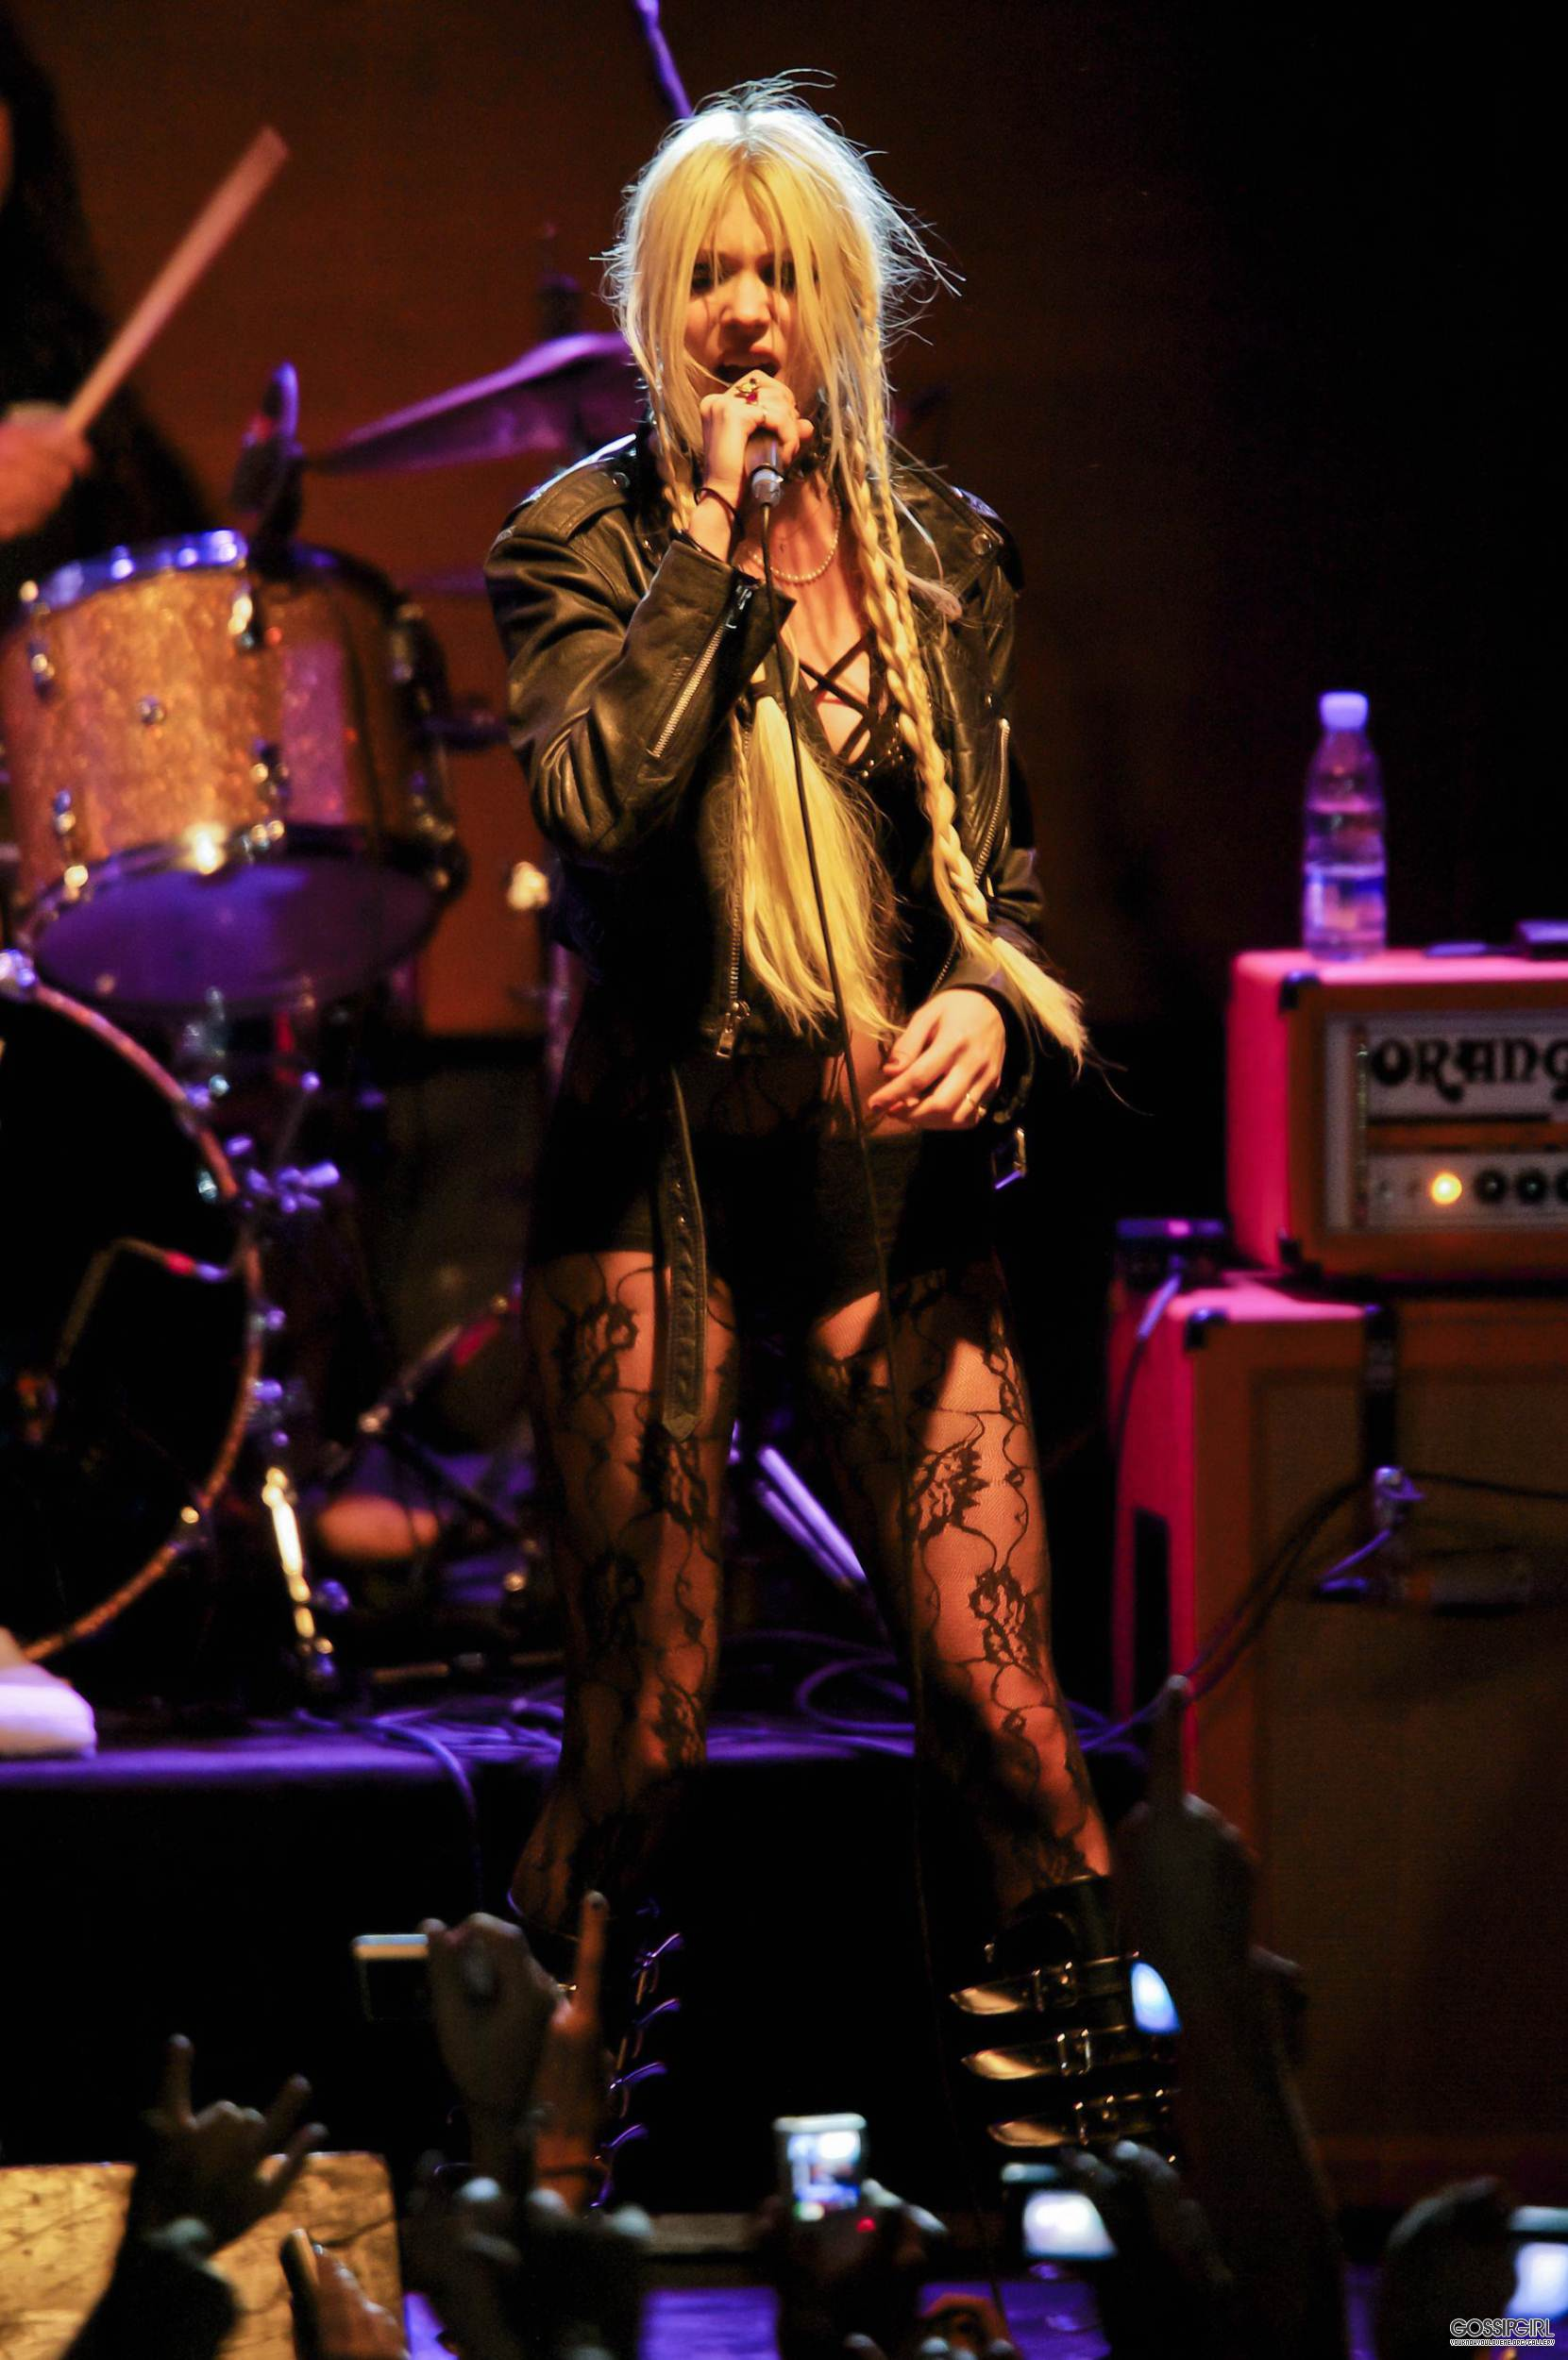 July 7th – The Pretty Reckless Perform in コンサート in Madrid